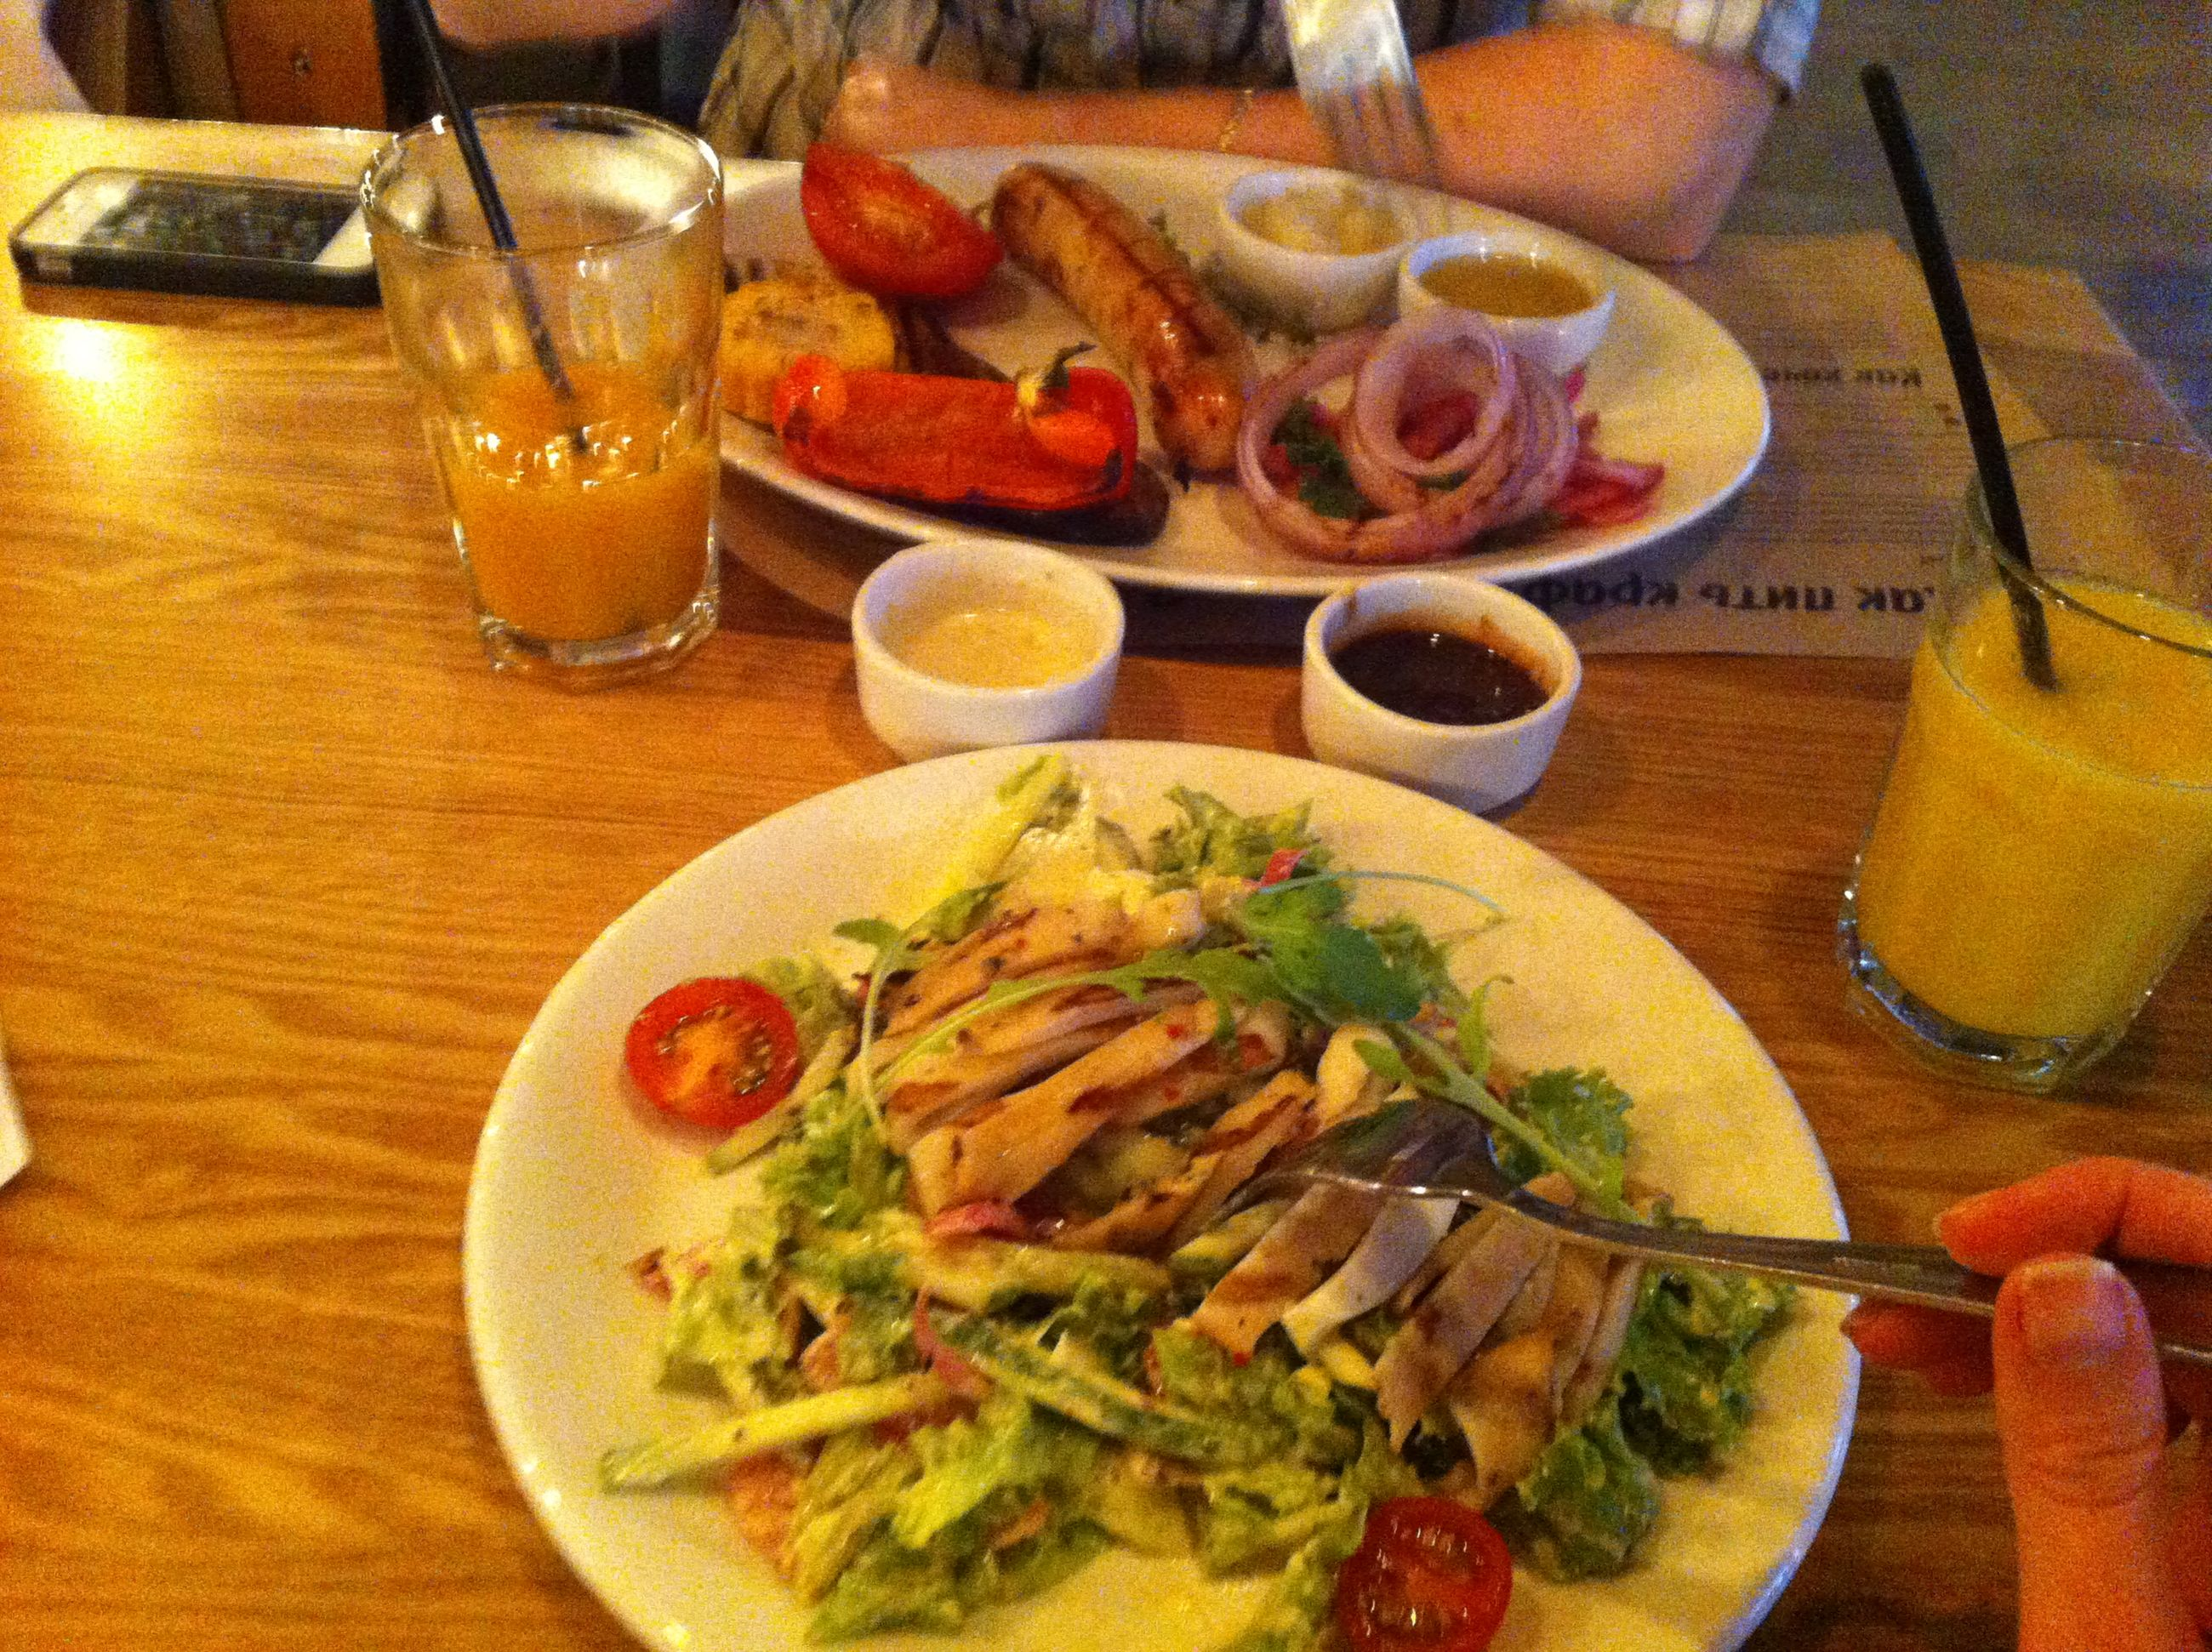 food and drink, food, freshness, indoors, table, ready-to-eat, plate, healthy eating, still life, meal, serving size, vegetable, high angle view, meat, bowl, salad, served, fork, close-up, restaurant